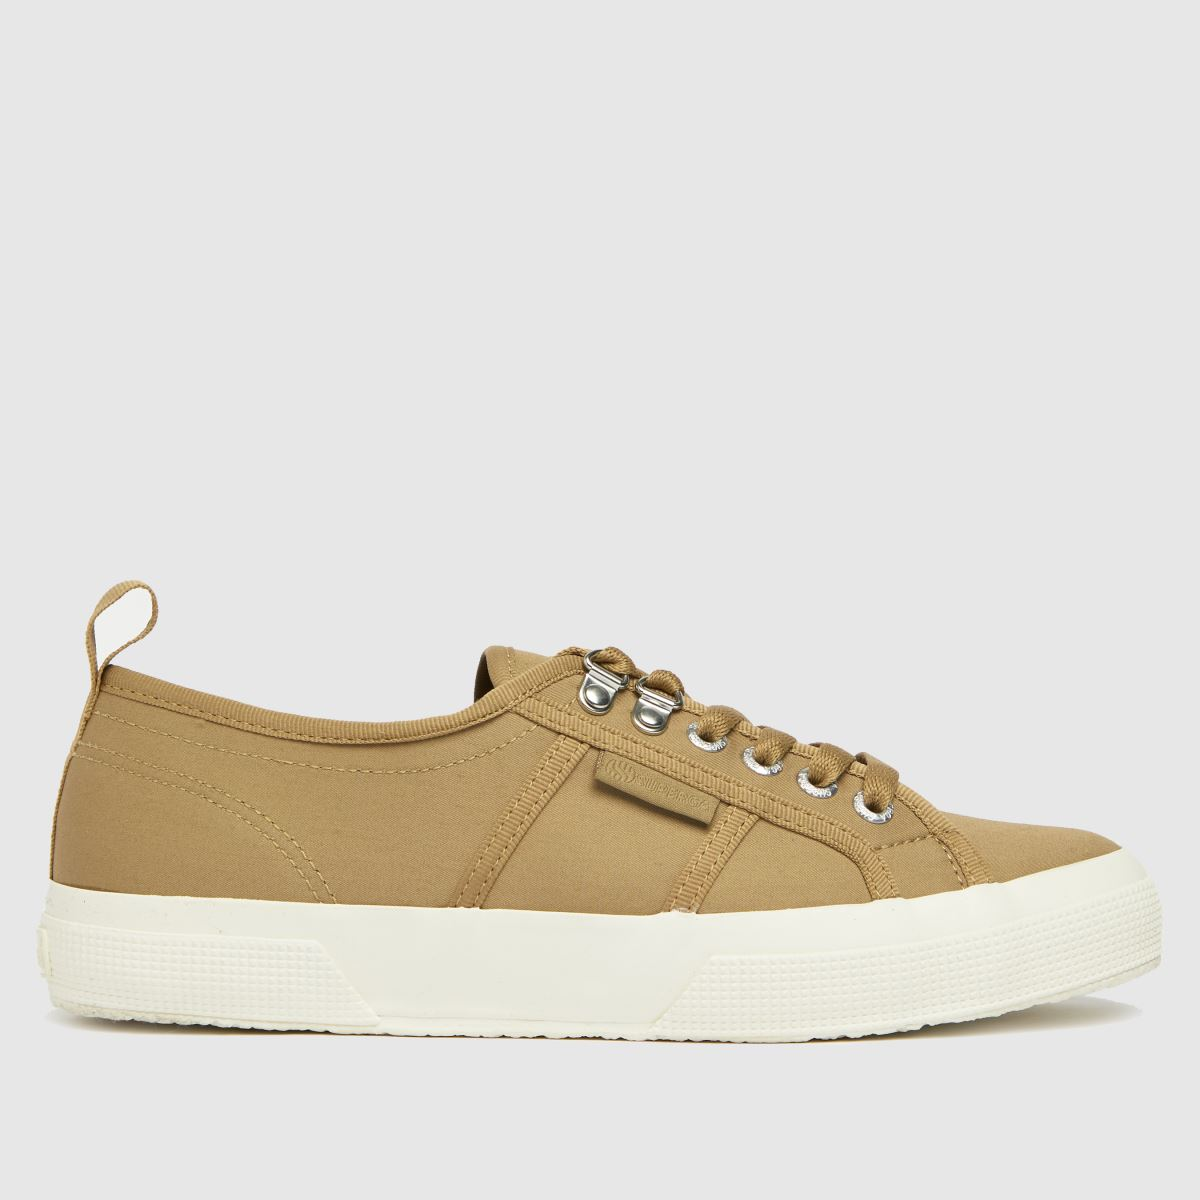 Superga Beige 2750 Trench Trainers